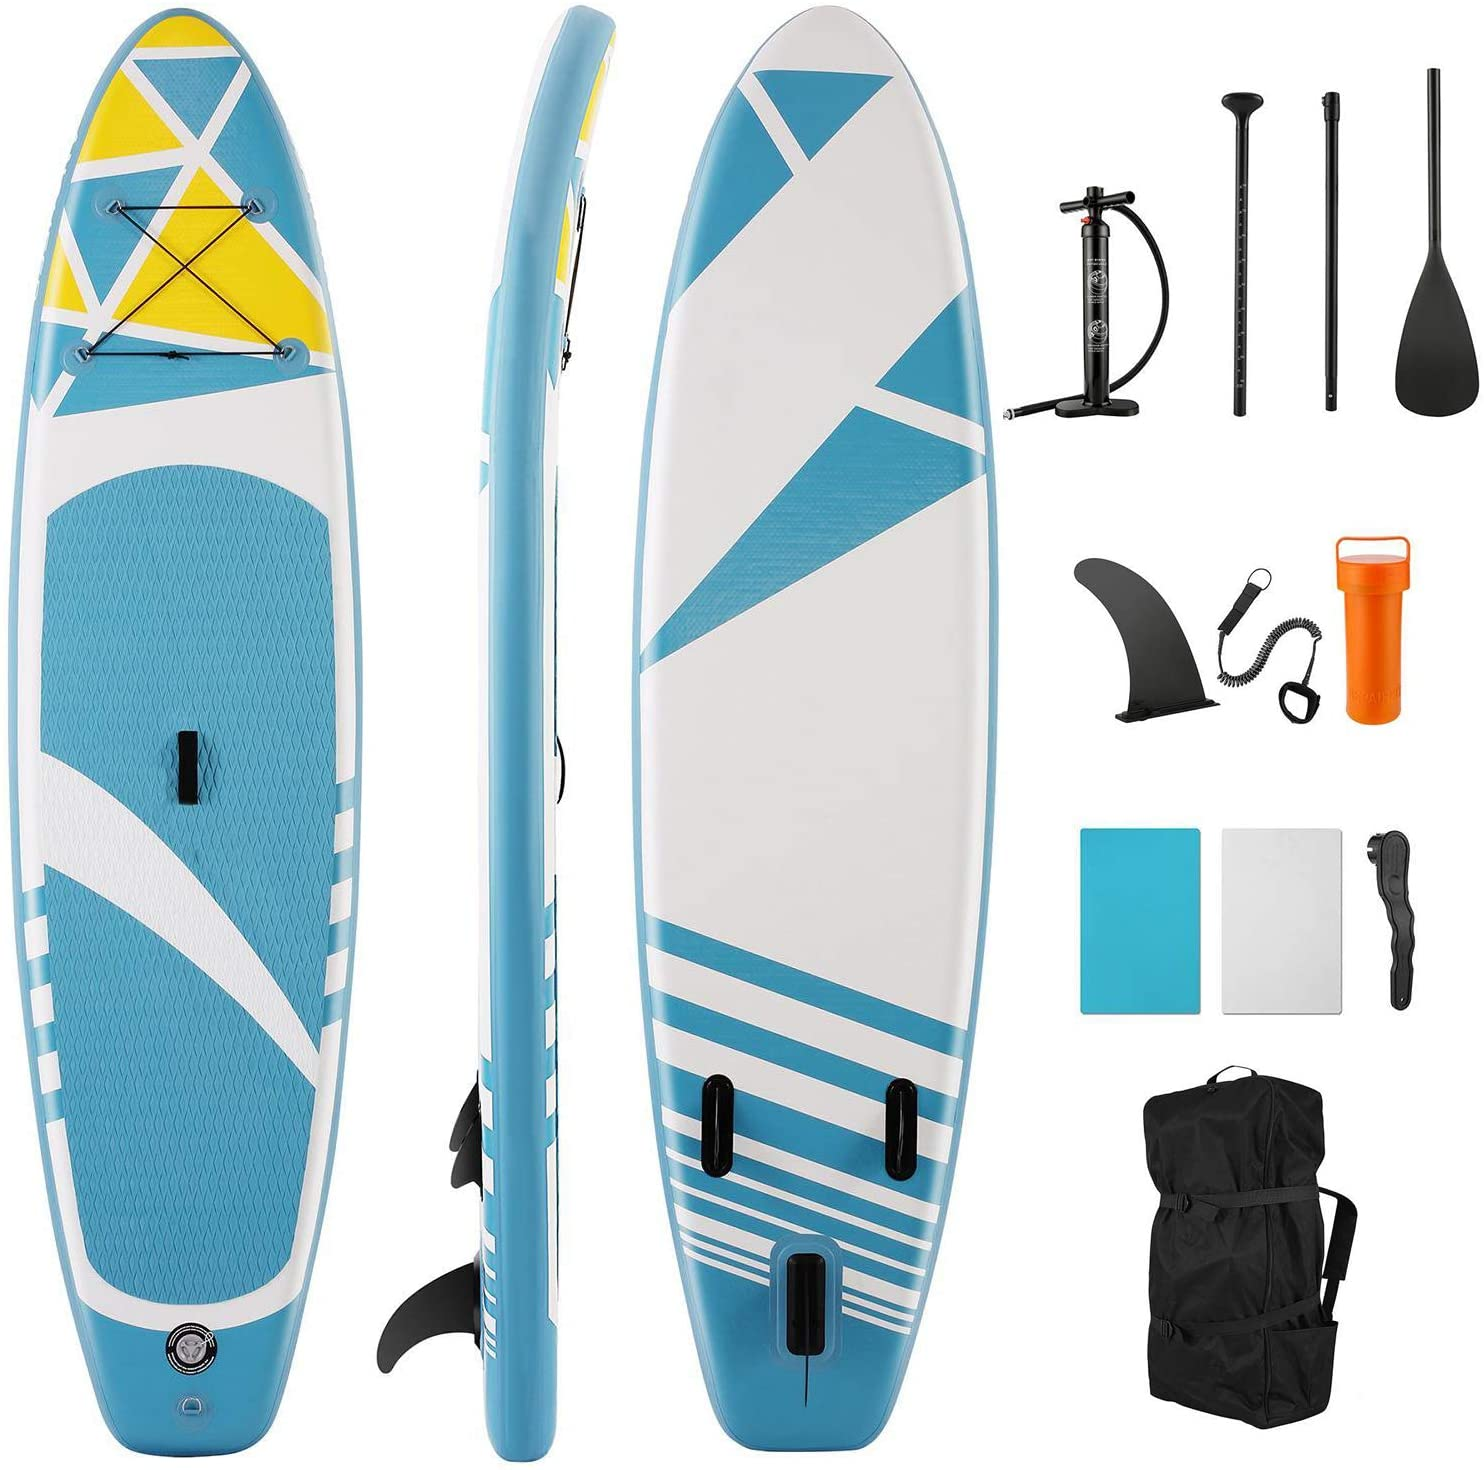 Hopekings Inflatable Stand Up Paddle Board